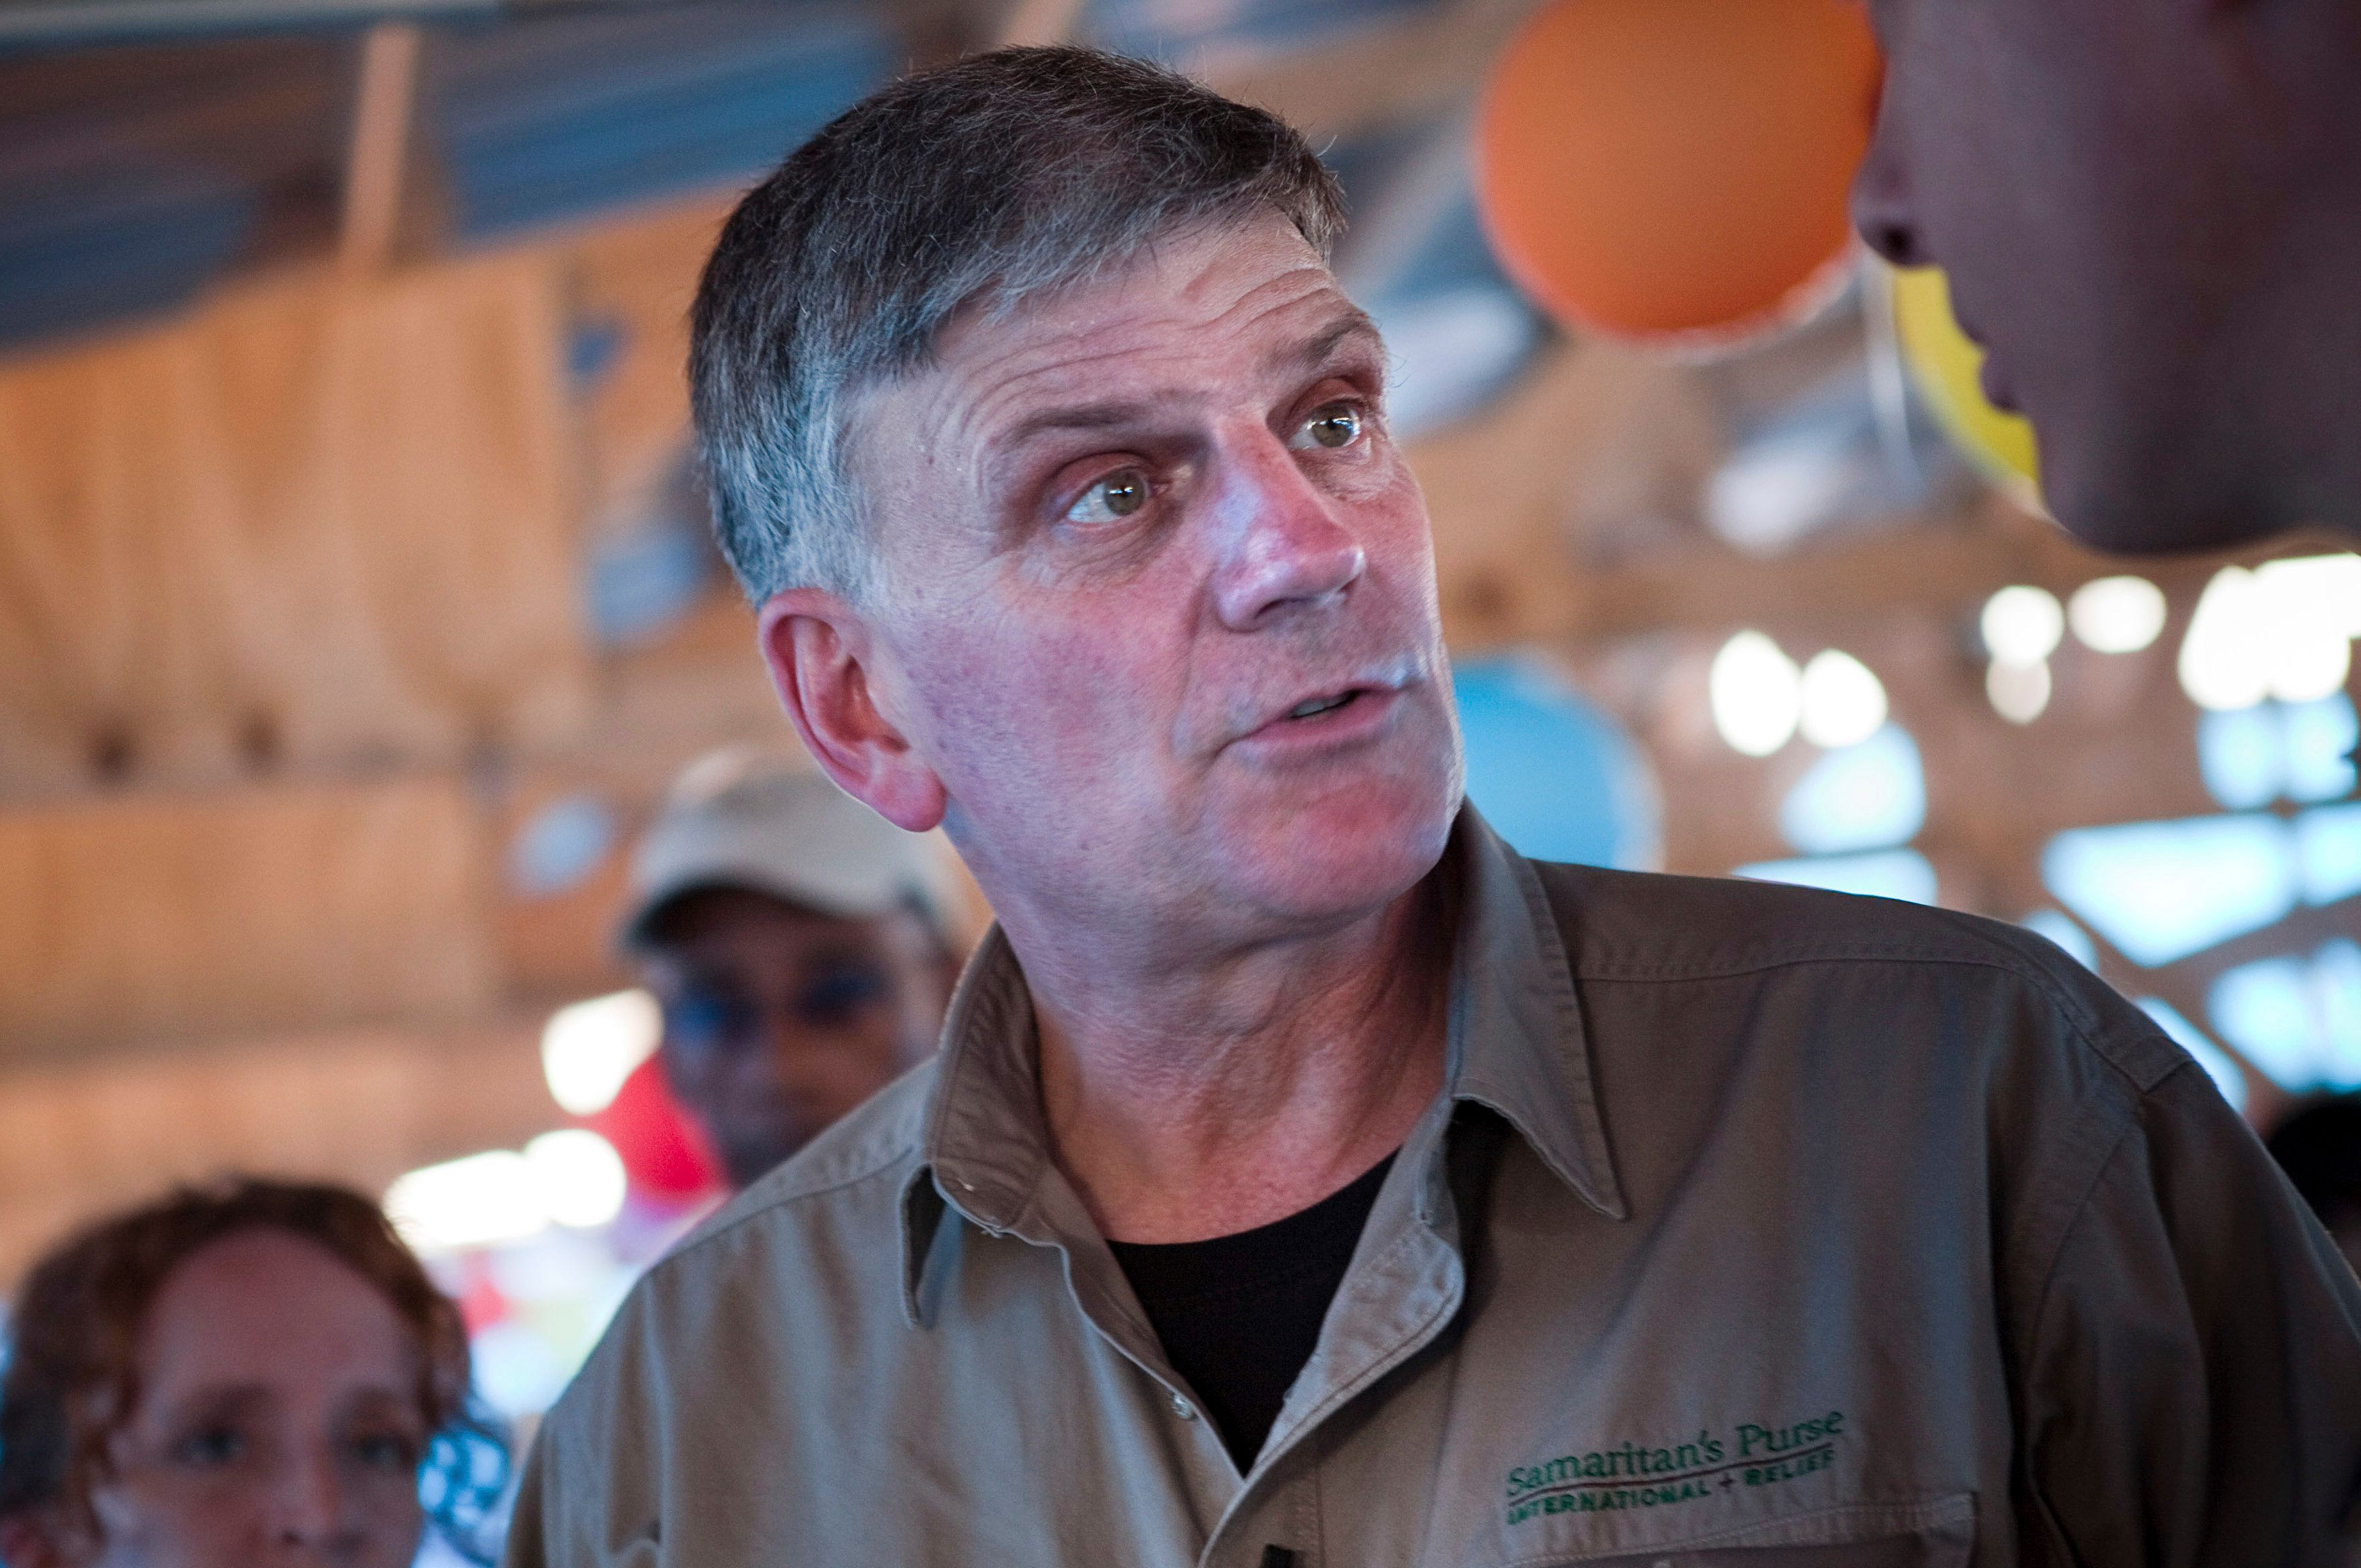 Franklin Graham, head of international relief organization Samaritan's Purse, visits one of the organization's cholera treatment centers in the Cite Soleil neighborhood of Port-au-Prince, January 8, 2011. REUTERS/Allison Shelley (HAITI - Tags: SOCIETY HEALTH)